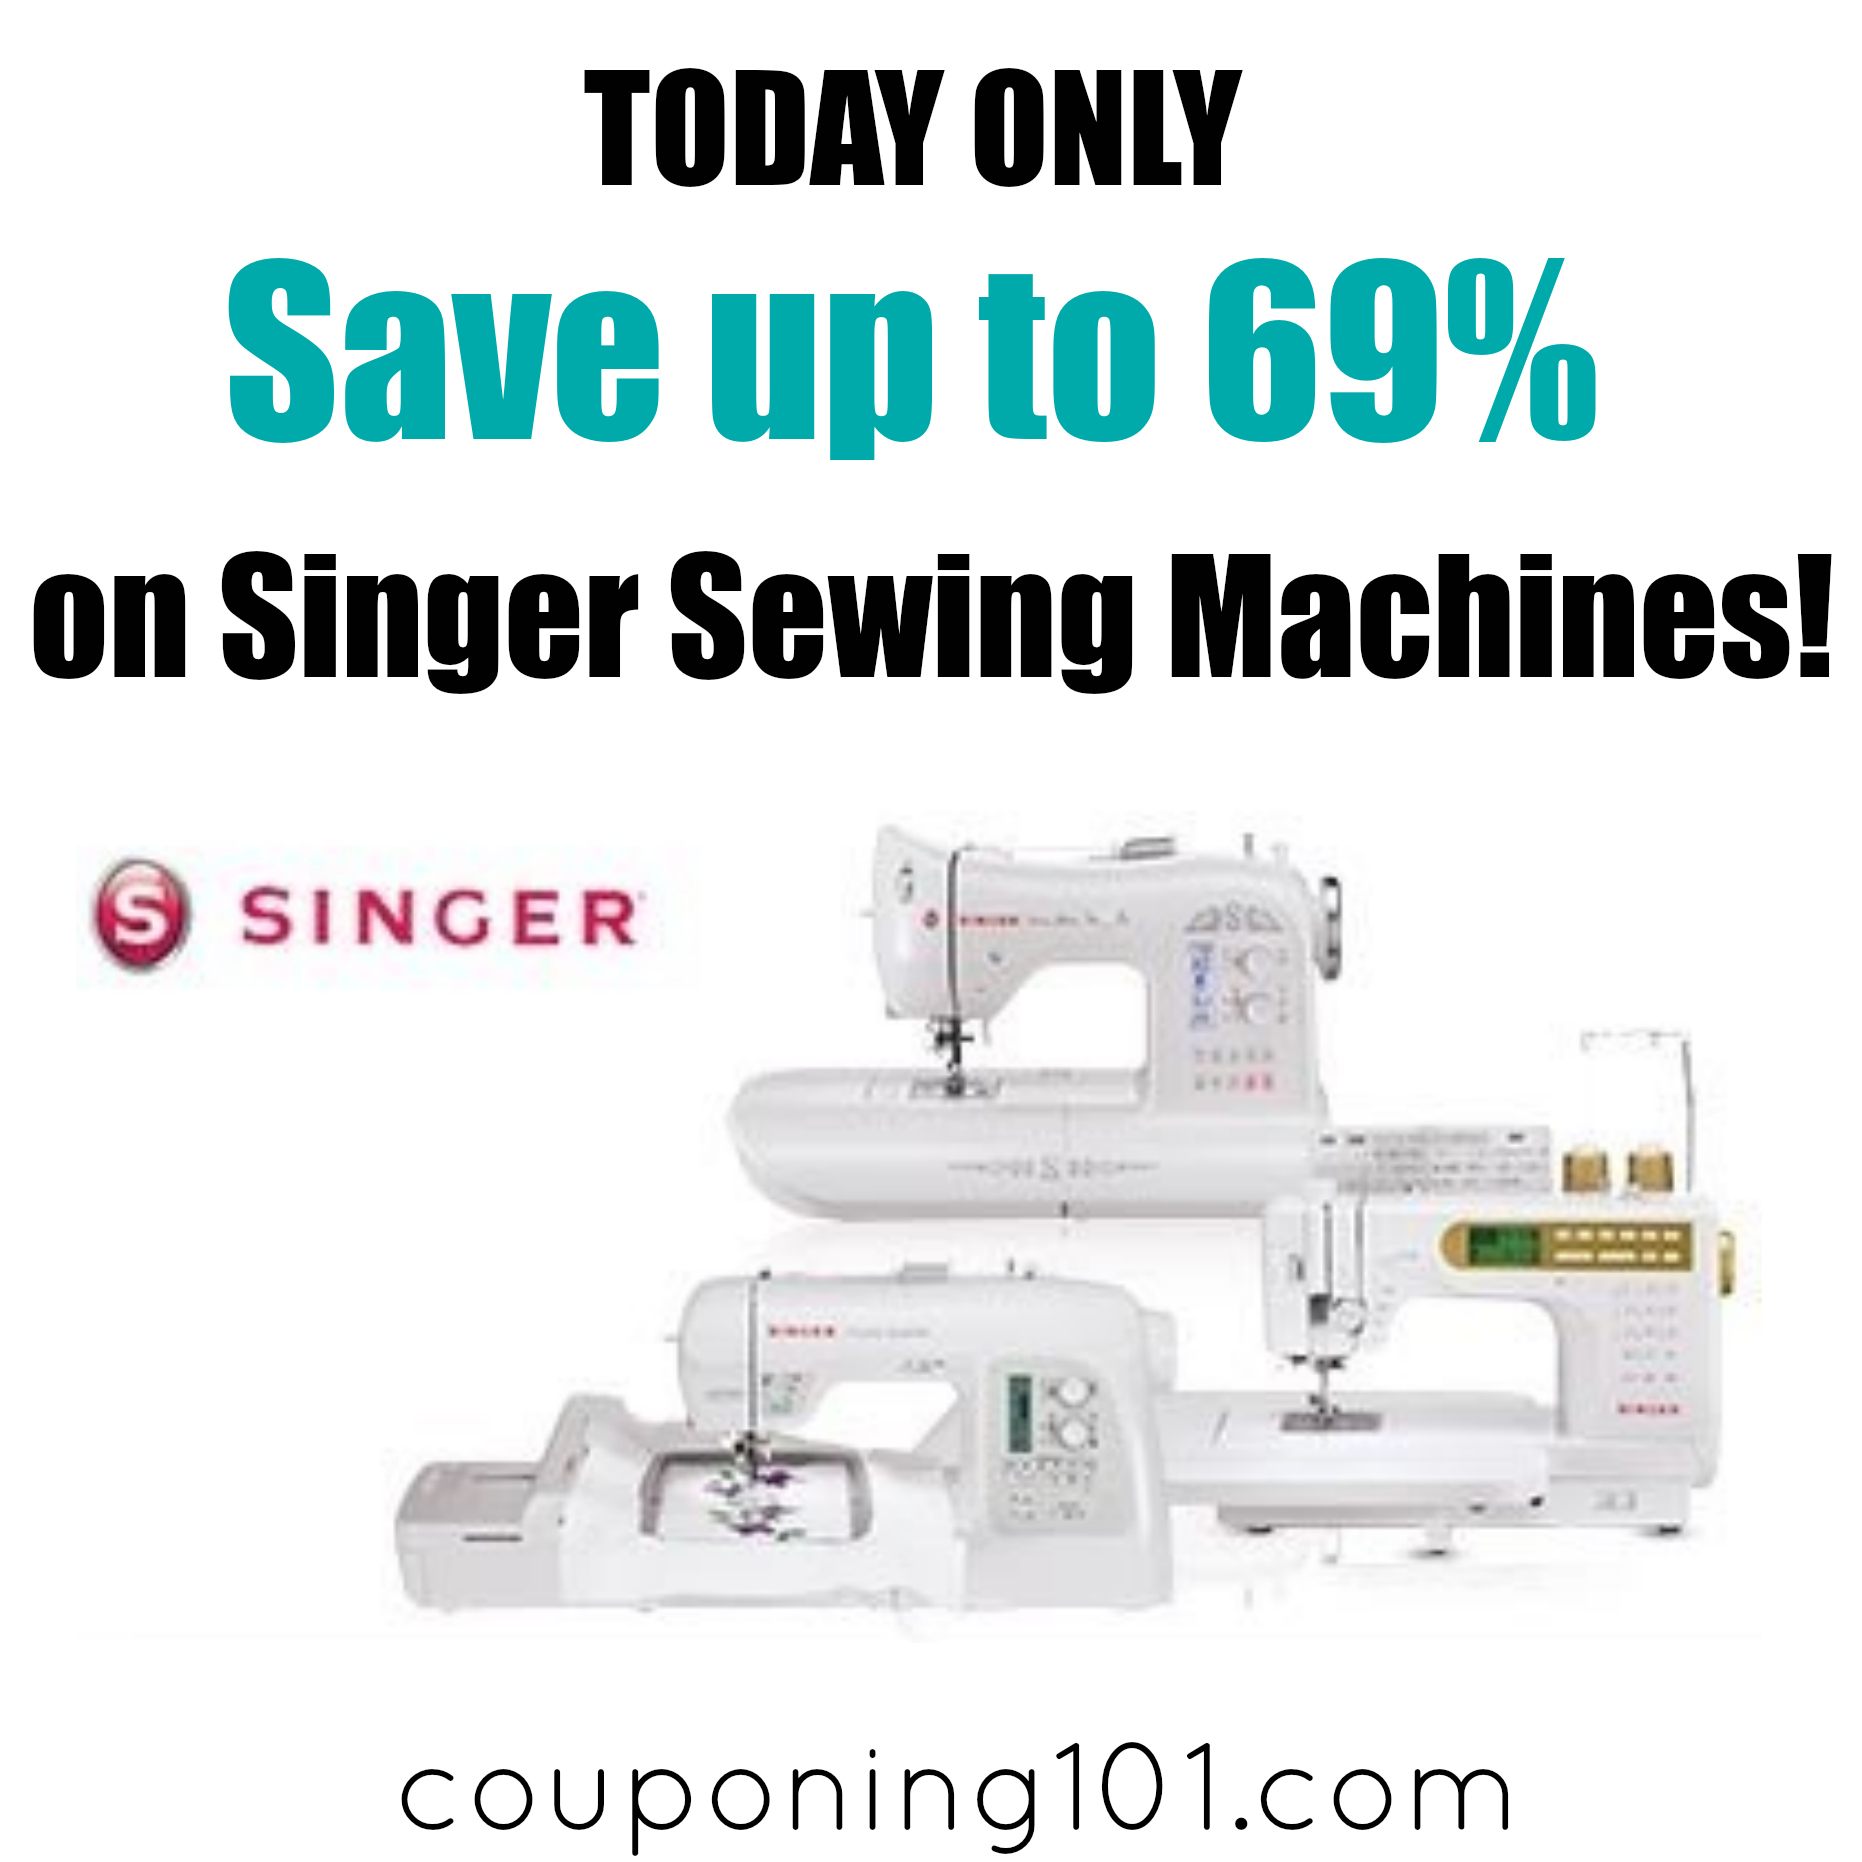 Save up to 69% on Singer Sewing Machines - today only!!